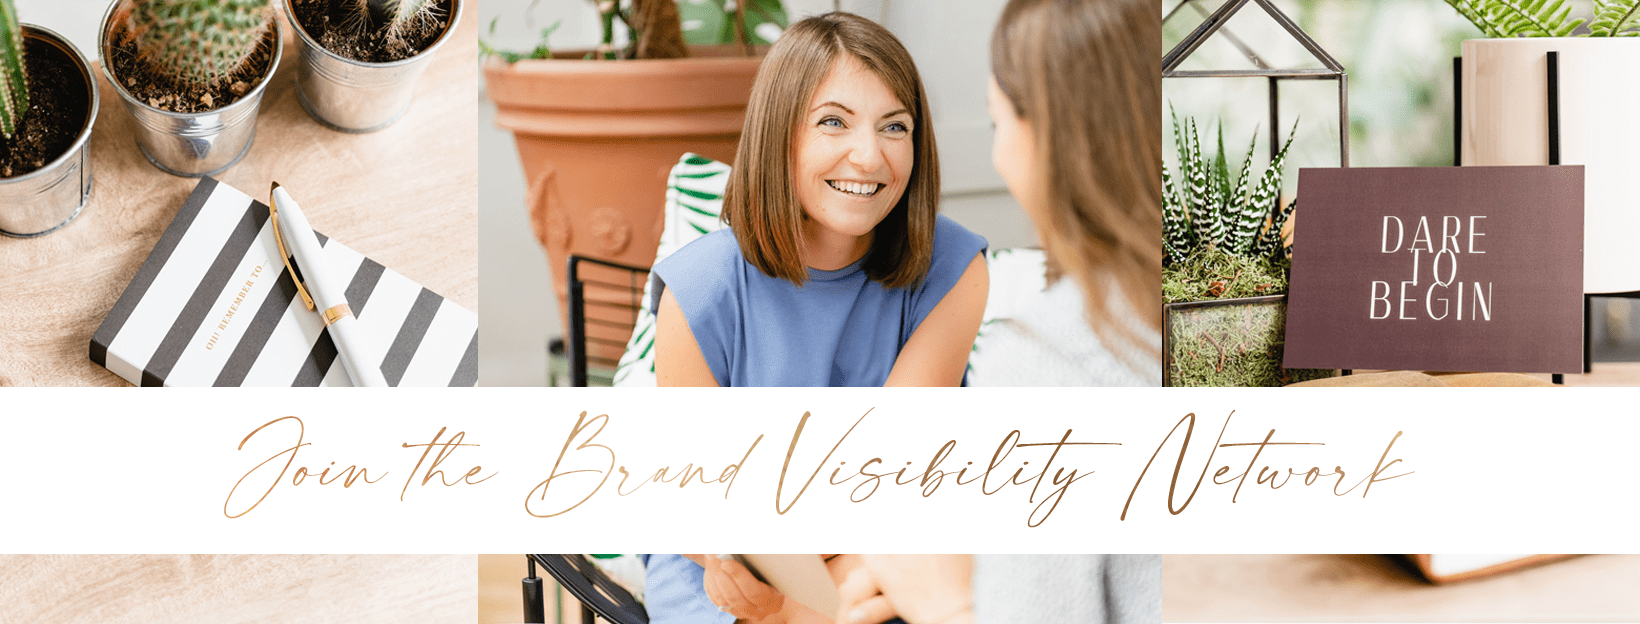 join the brand visibility network Banner